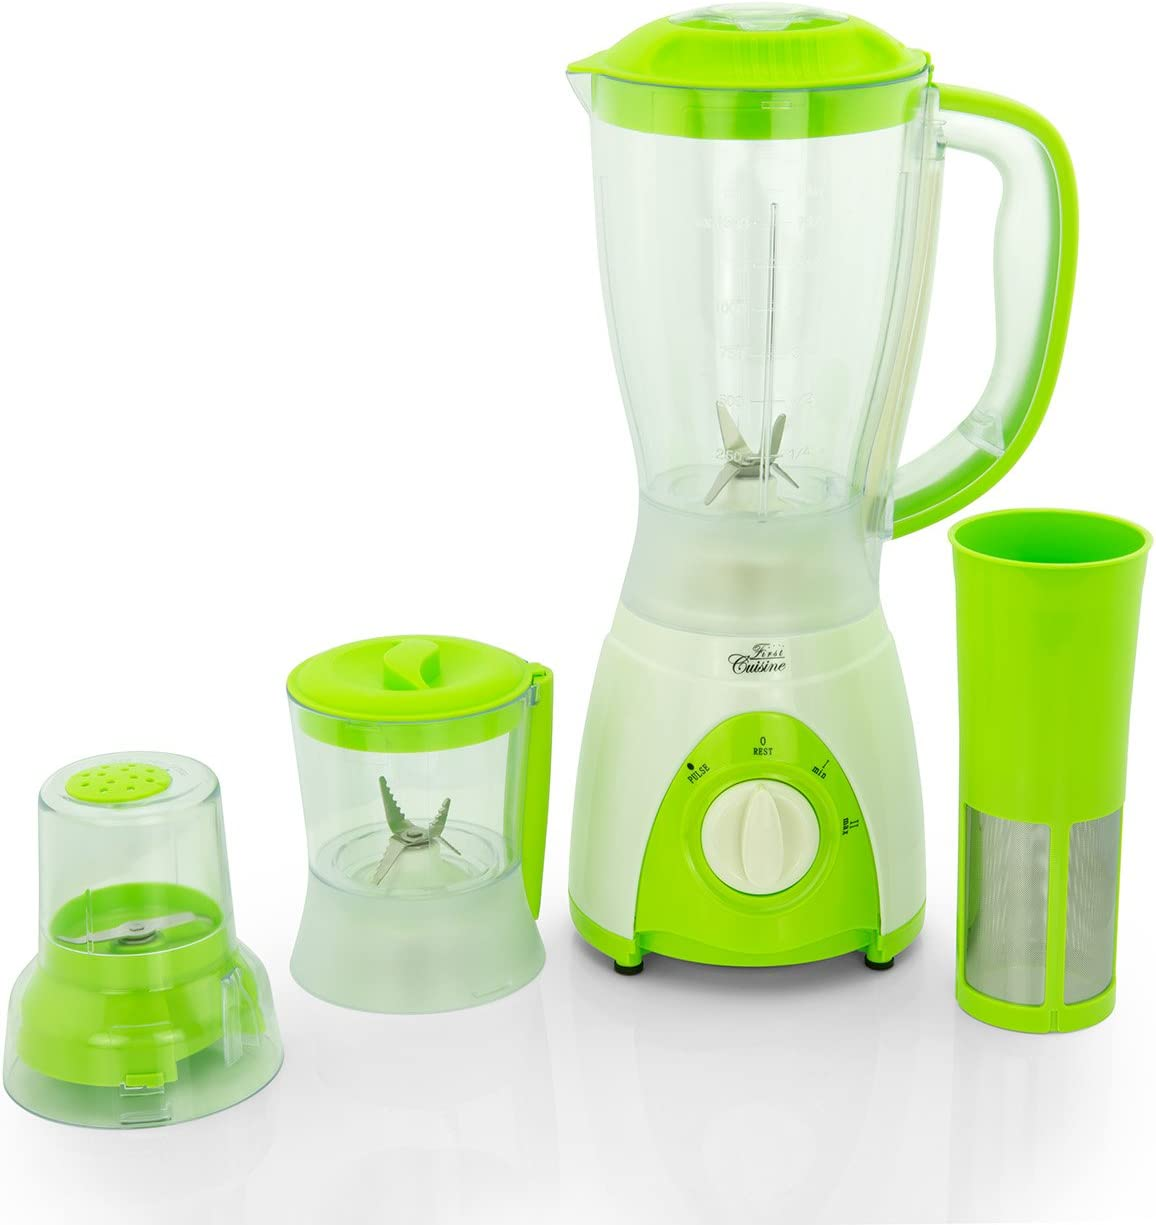 First Cuisine Blender Set of 9